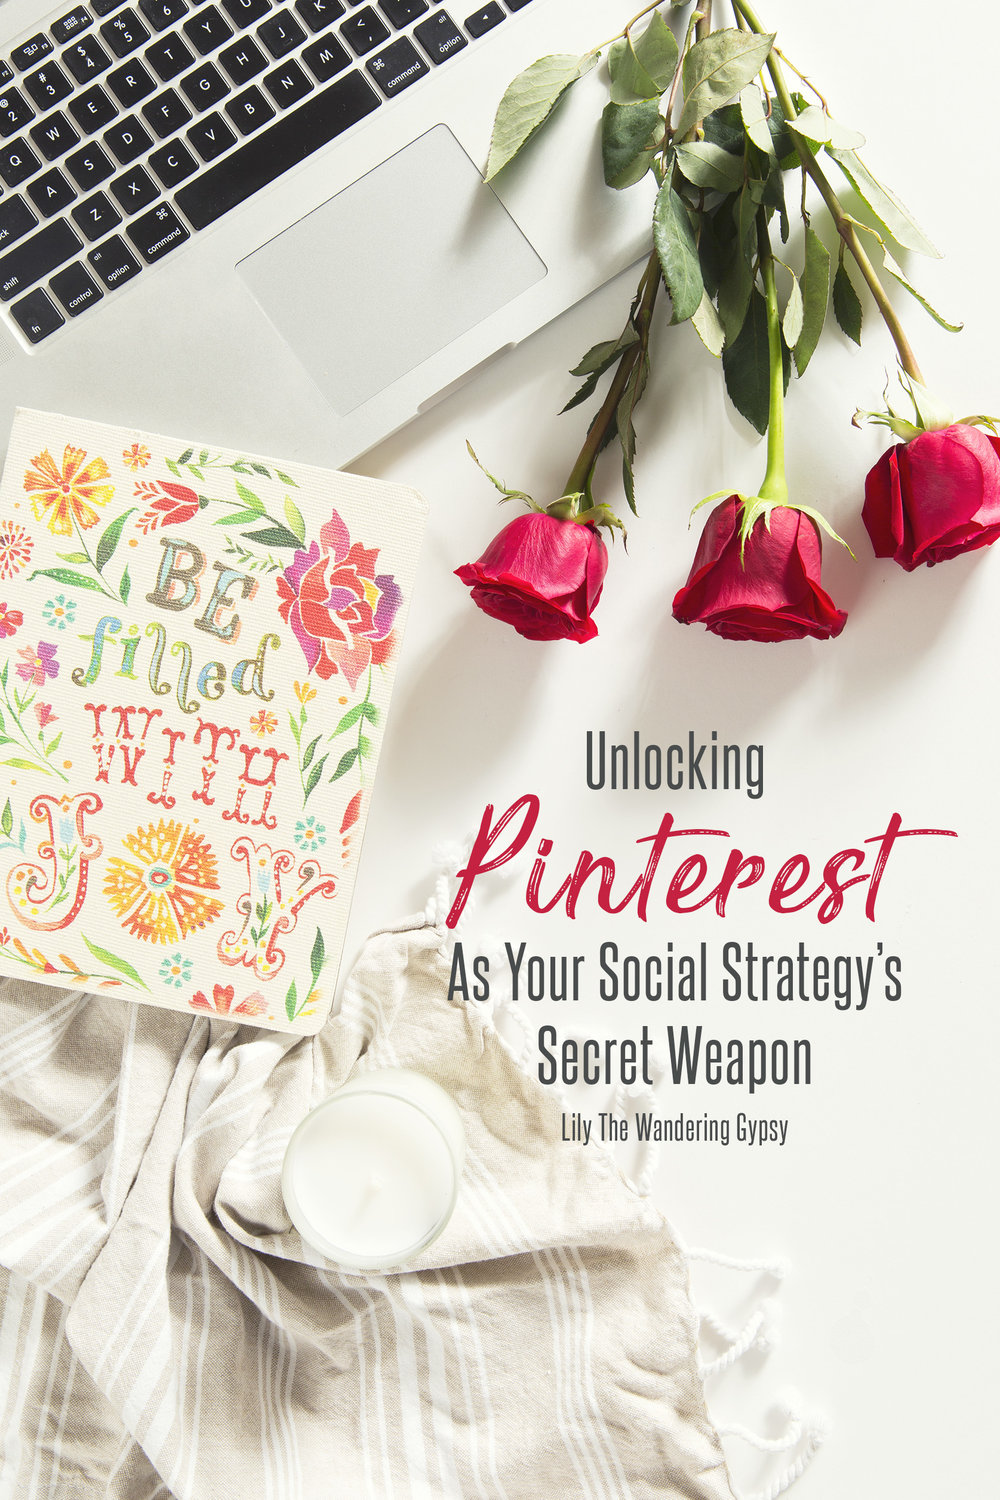 Unlocking Pinterest As Your Social Strategy's Secret Weapon